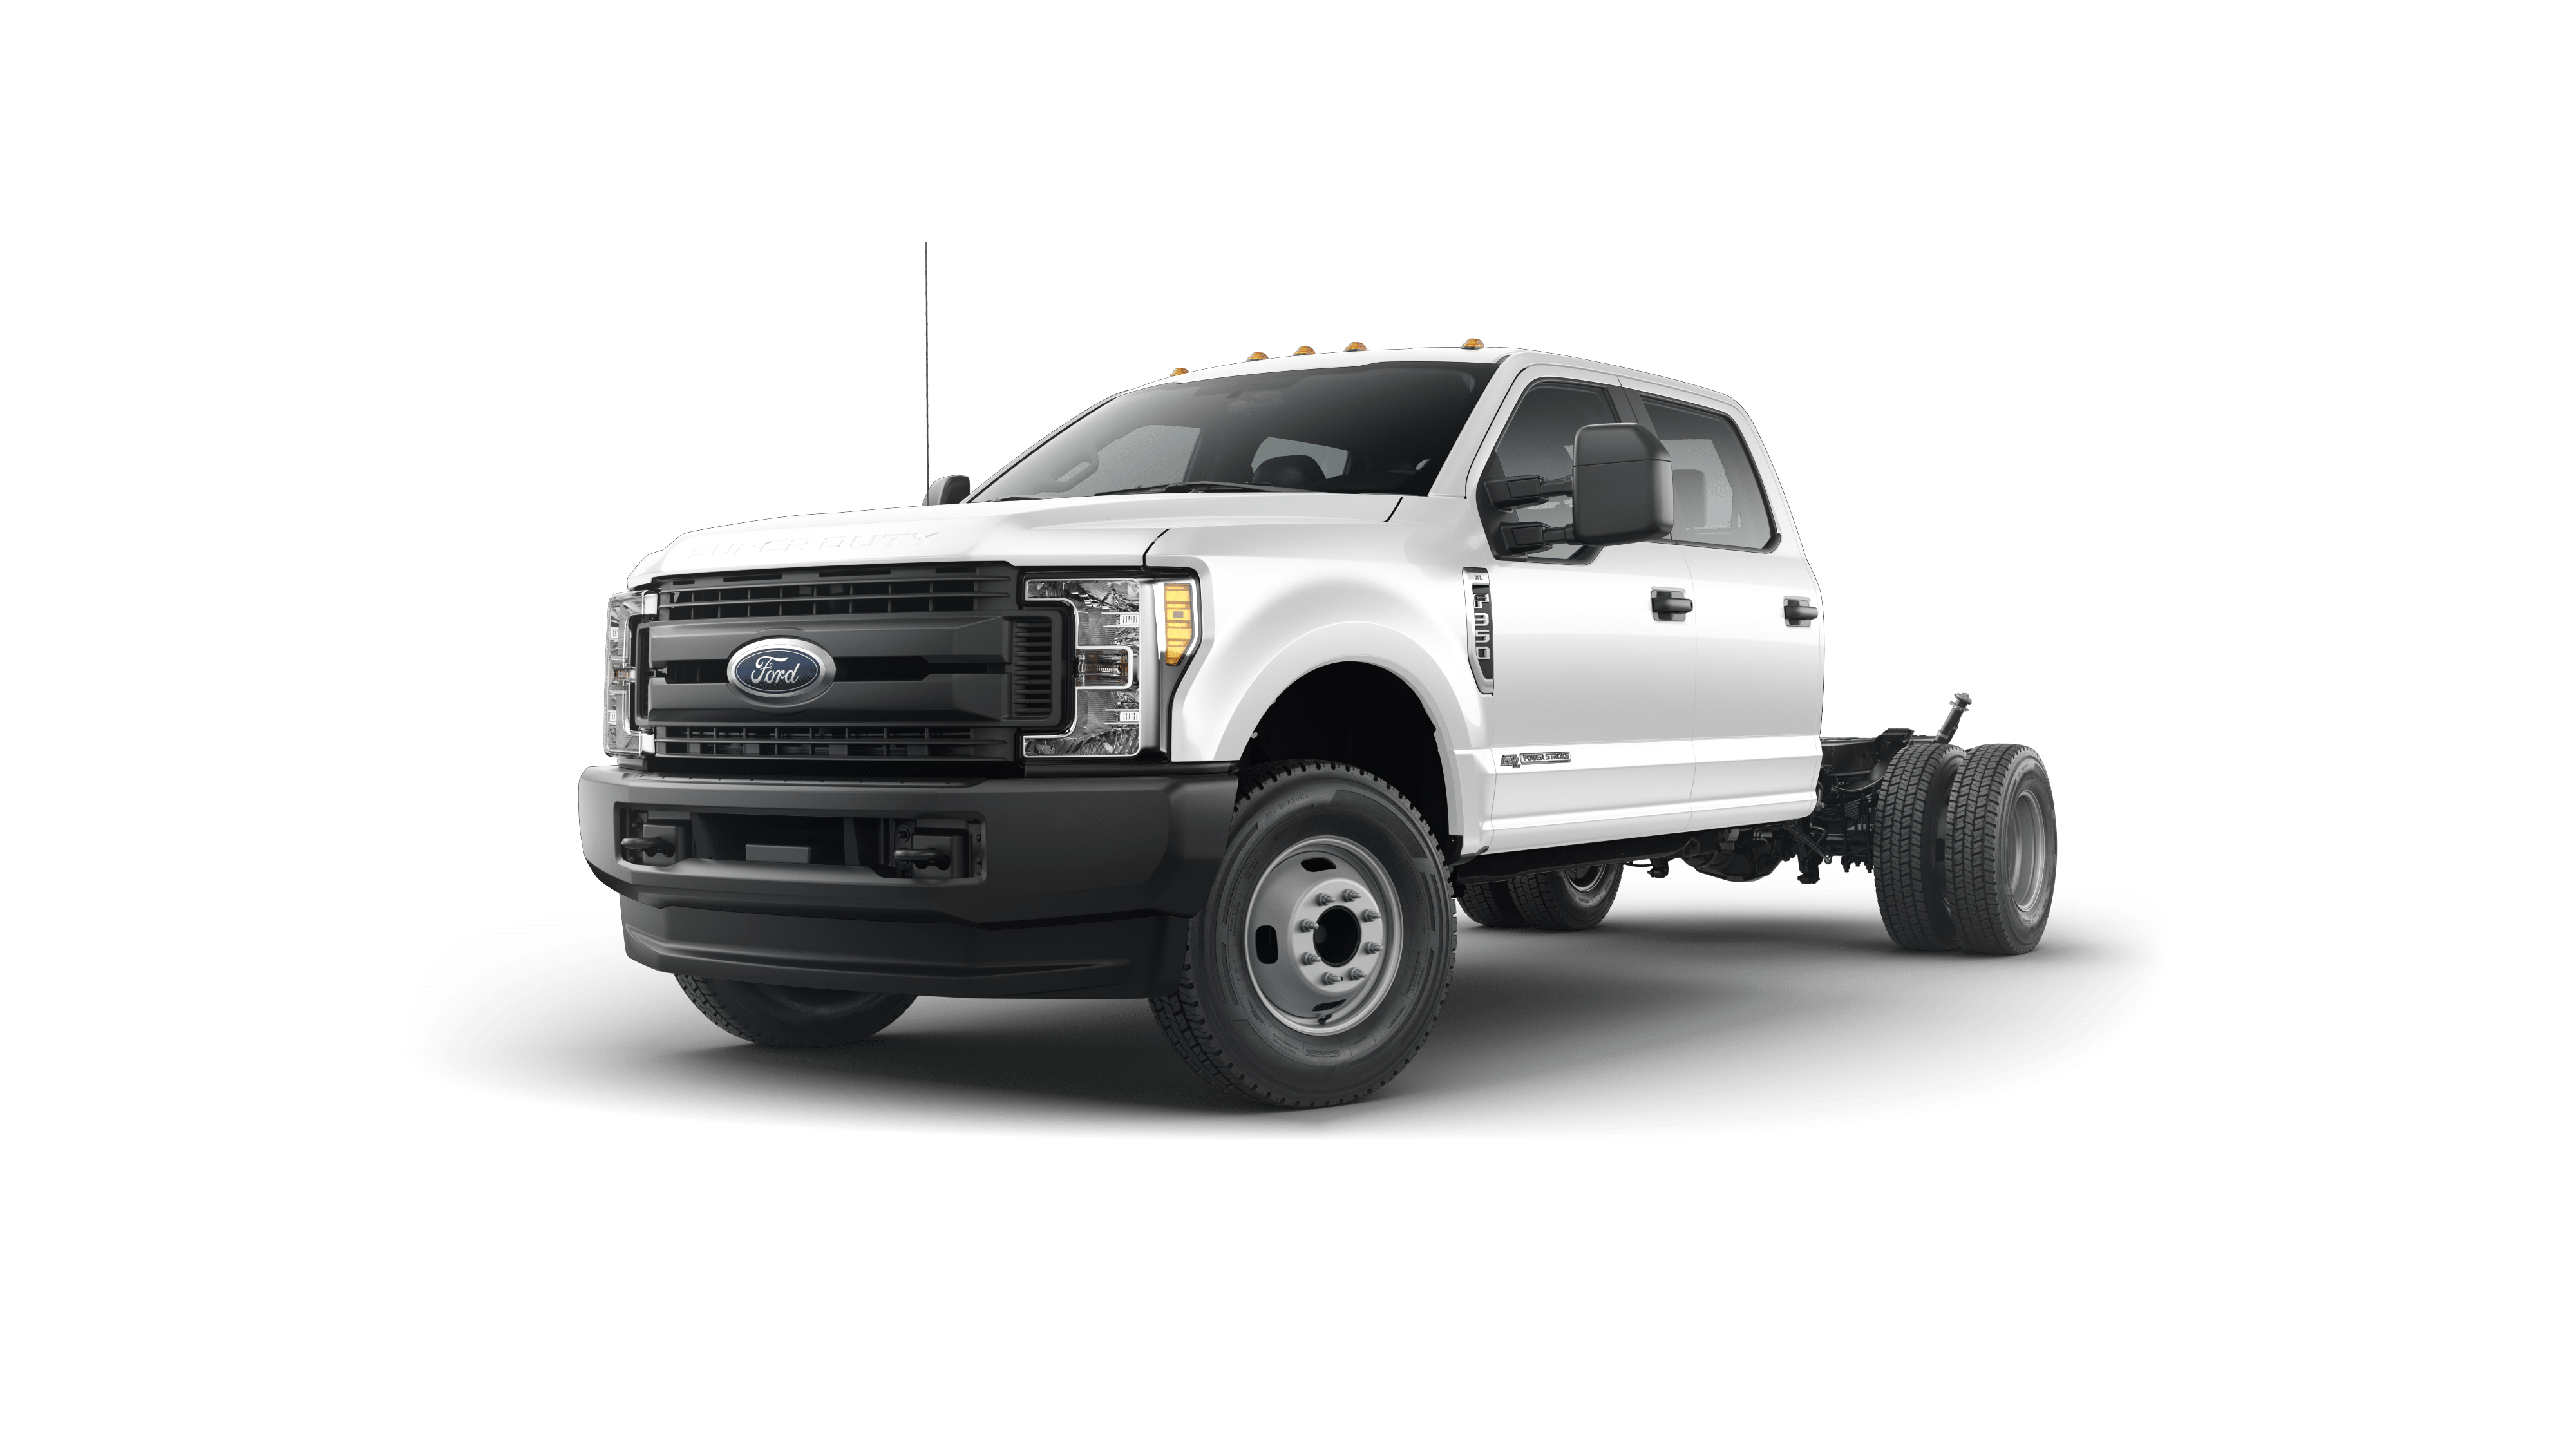 2018 Ford Super Duty F 350 DRW for sale in Terrell